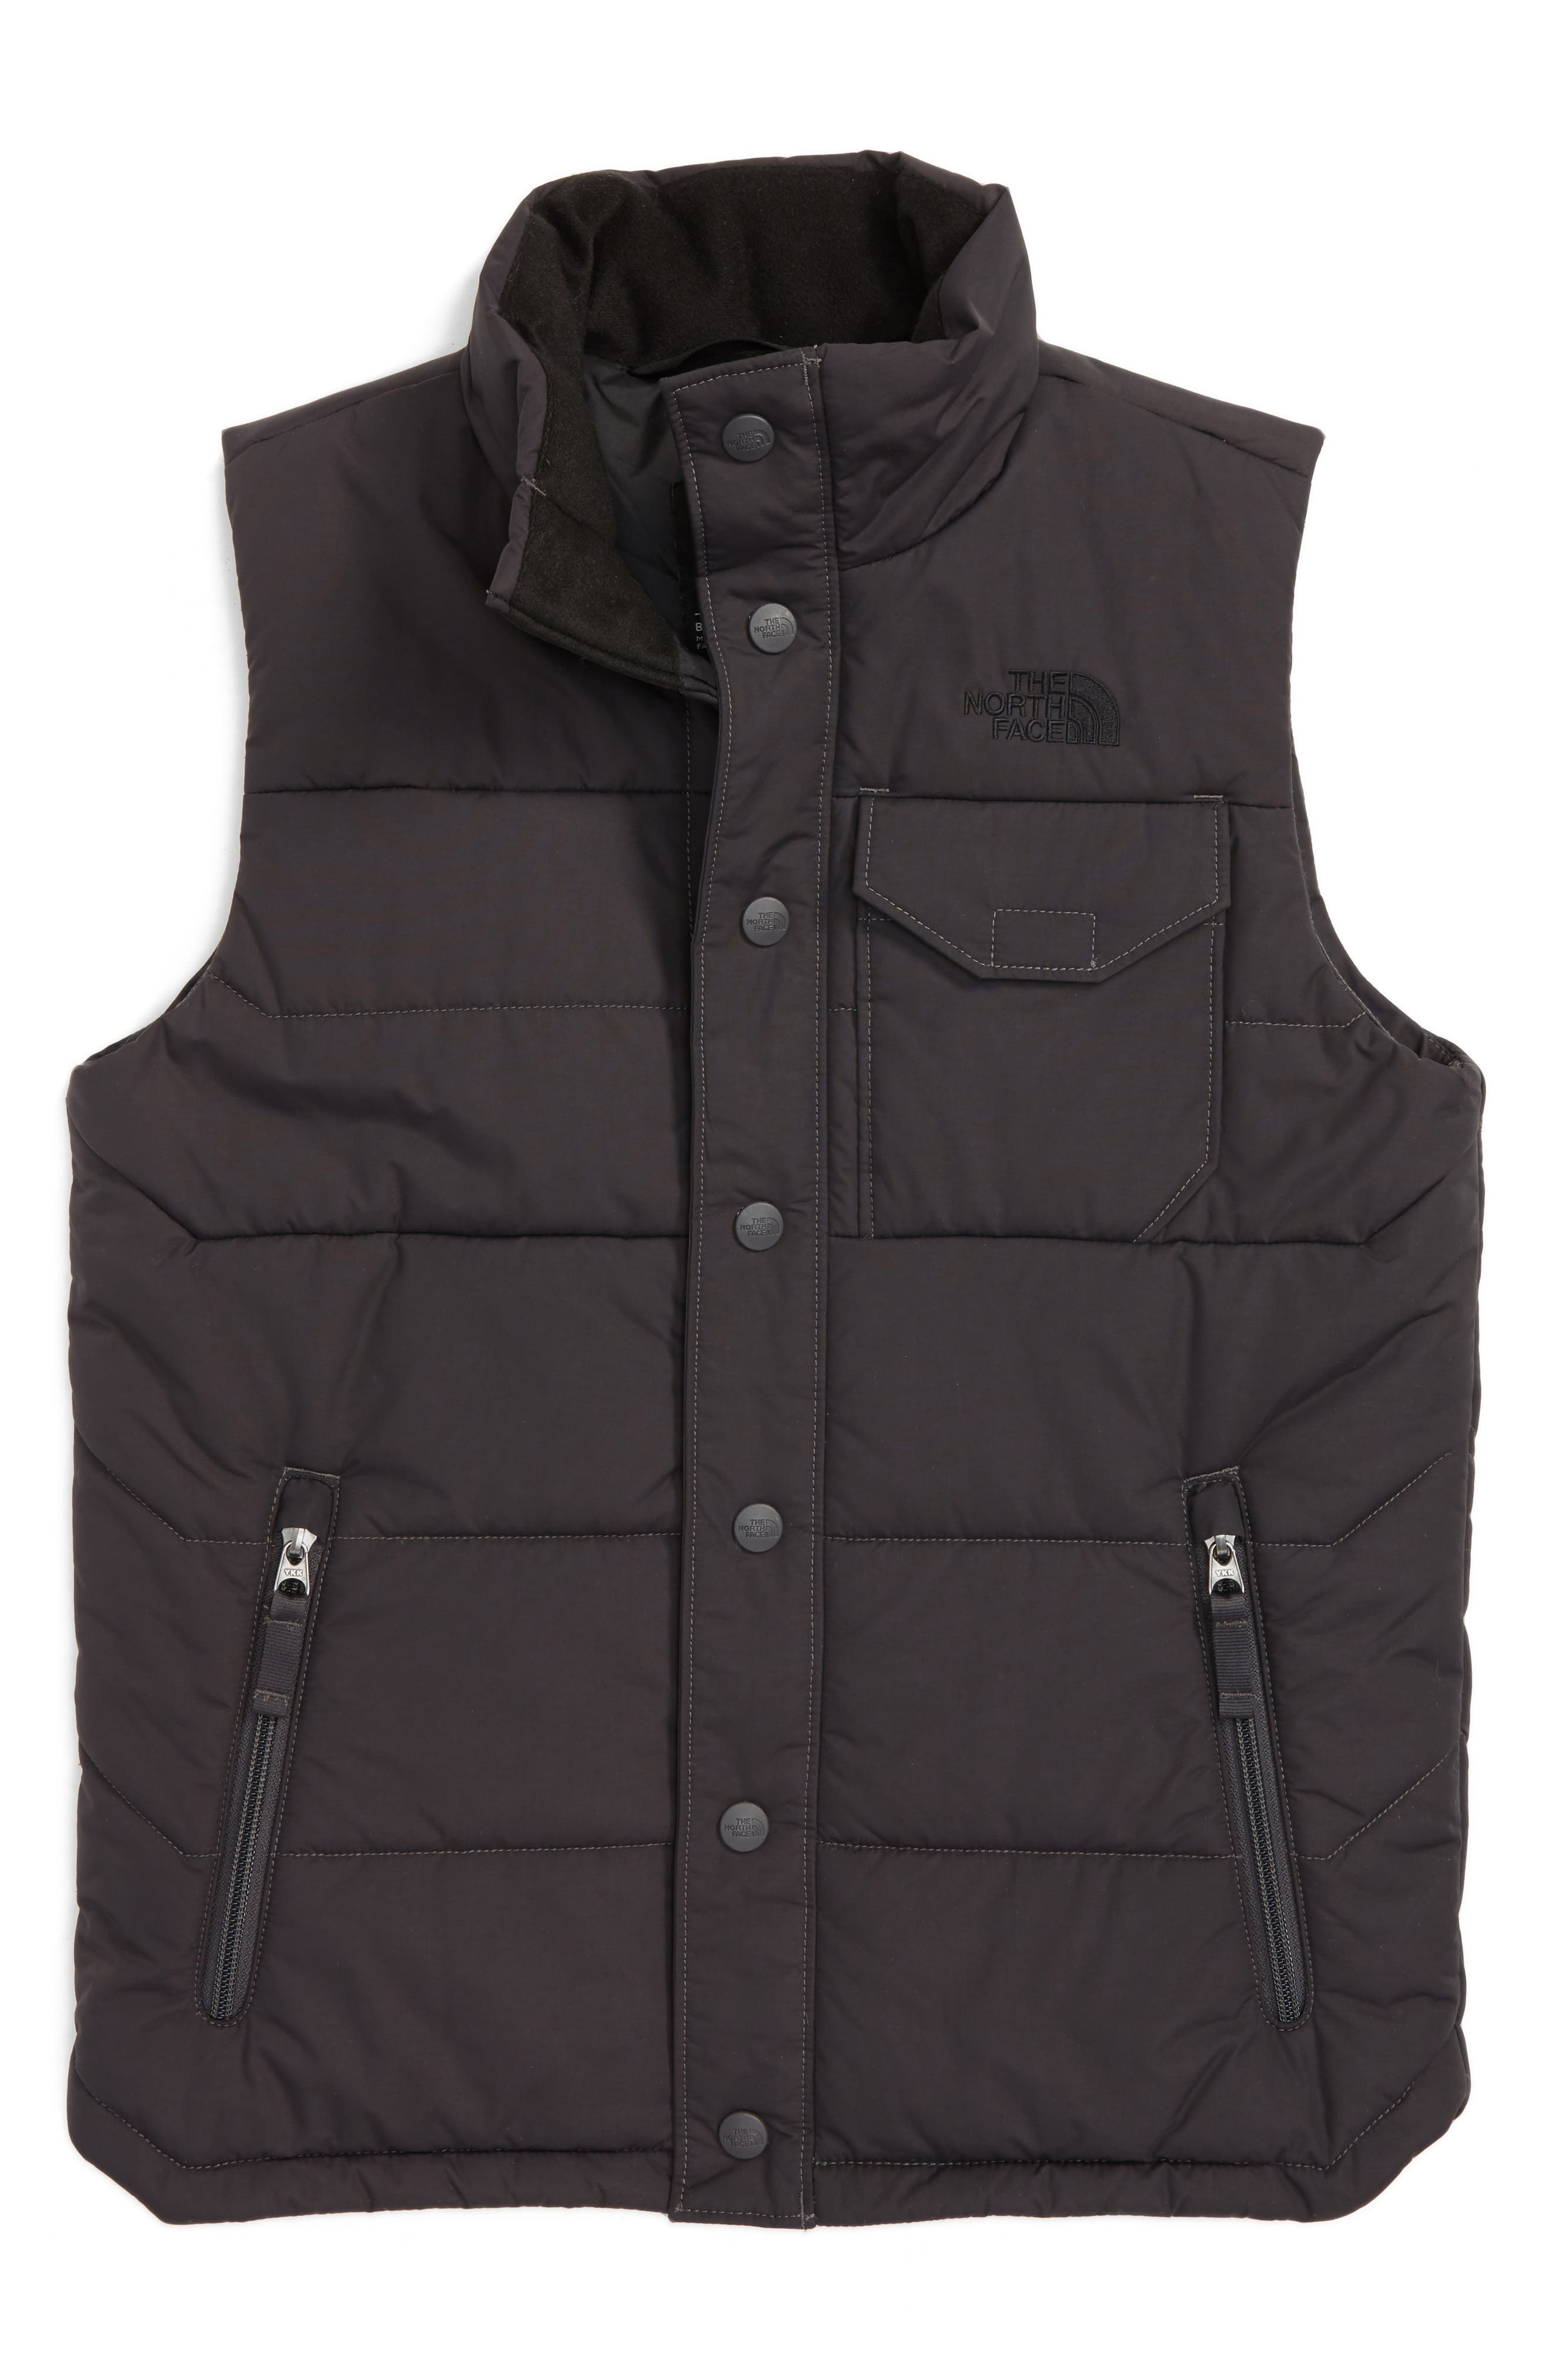 Patrick's Point Quilted Down Vest,                         Main,                         color, Graphite Grey